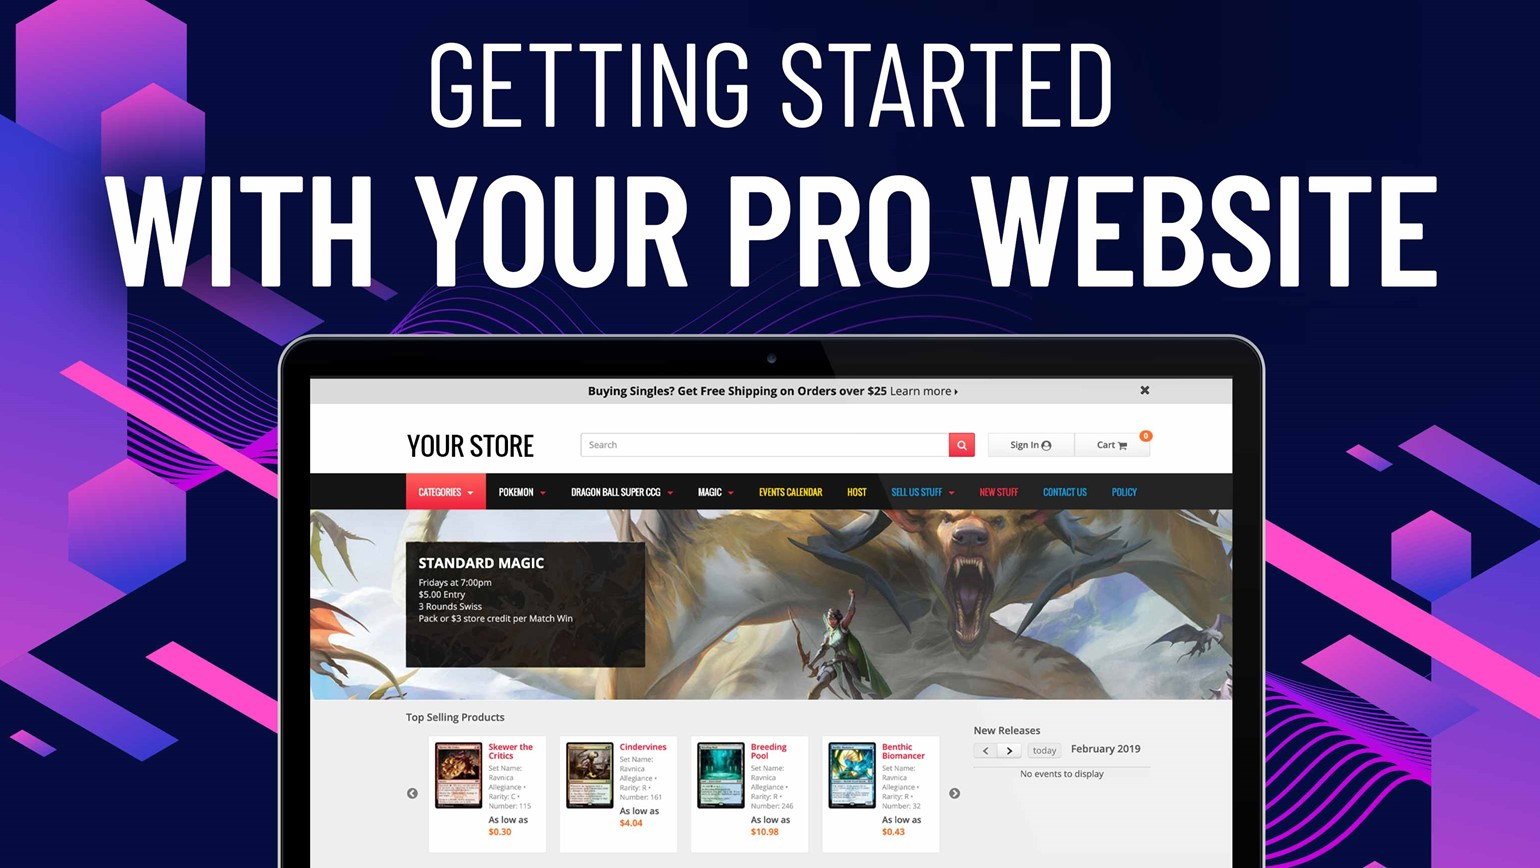 Getting Started with Your Pro Website